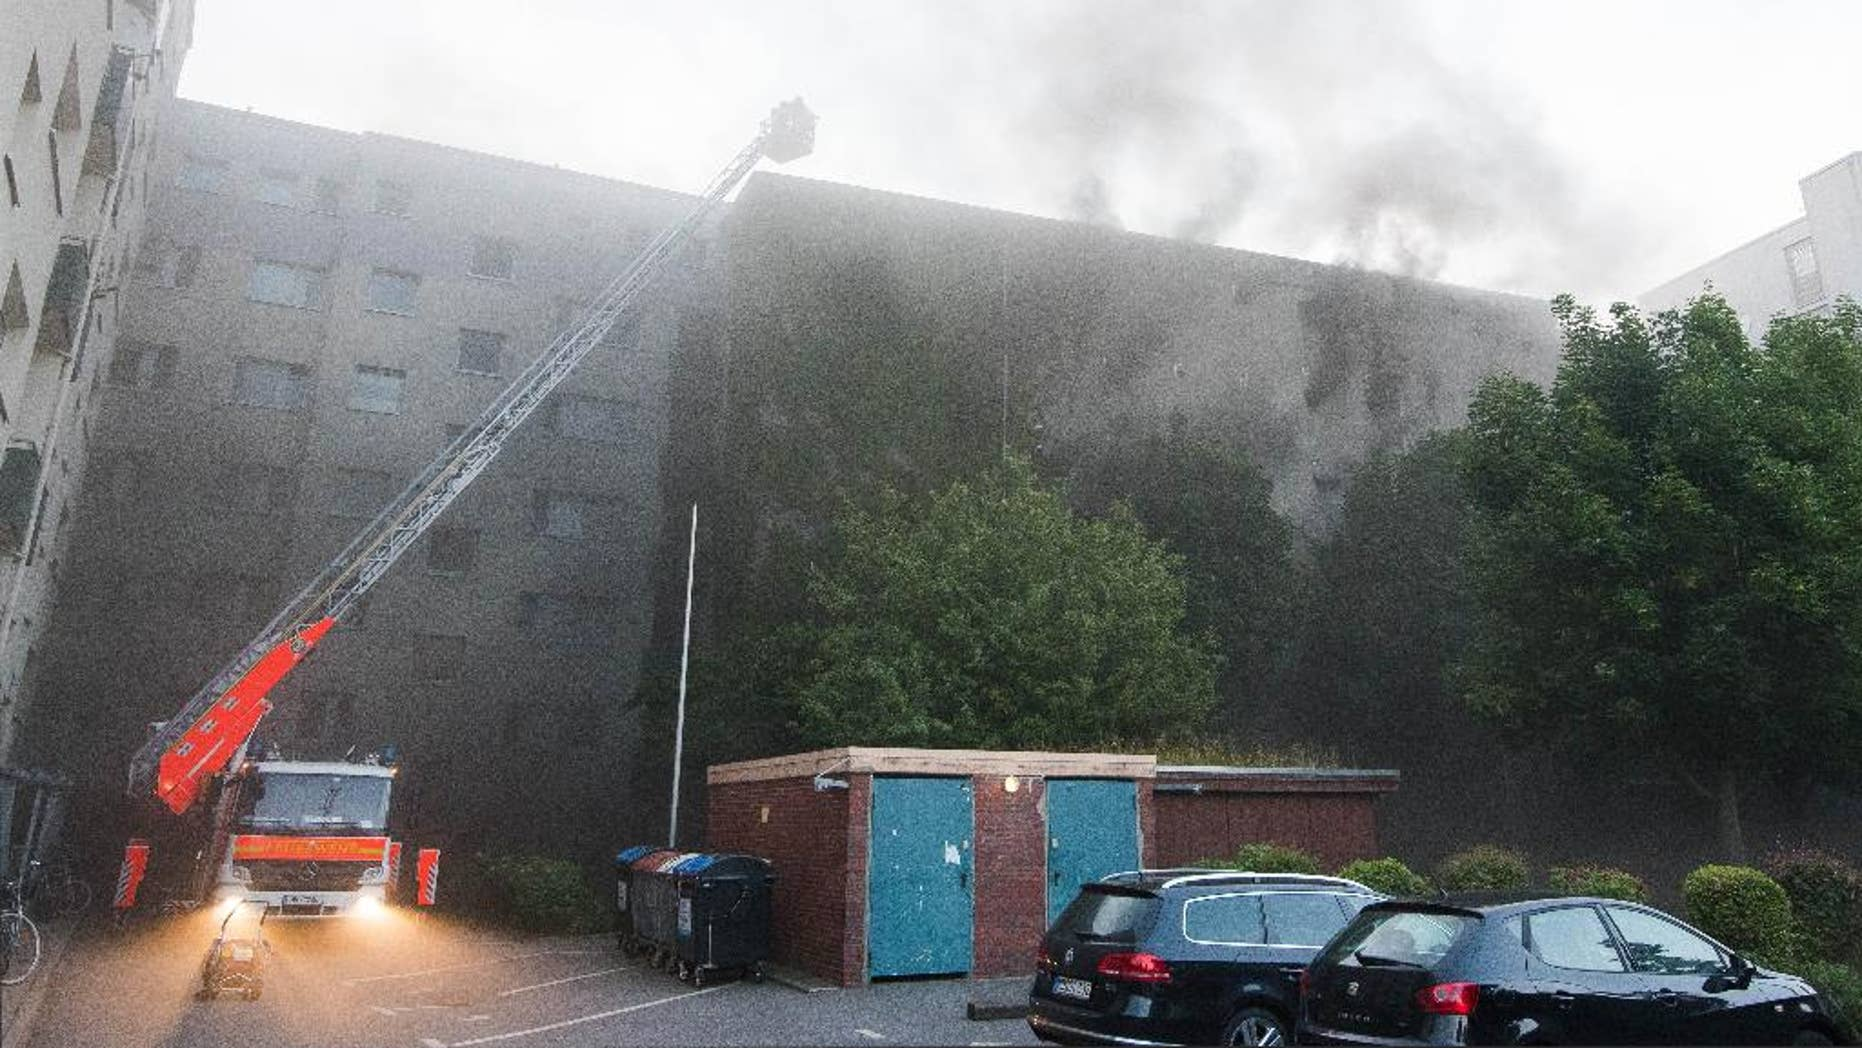 Smoke rises from a burning former air-raid shelter in Hamburg,northern Germany, Tuesday, Aug. 4, 2015. Authorities say 27 people have been injured in the fire and subsequent explosion. (Daniel Bockwoldt/dpa via AP)